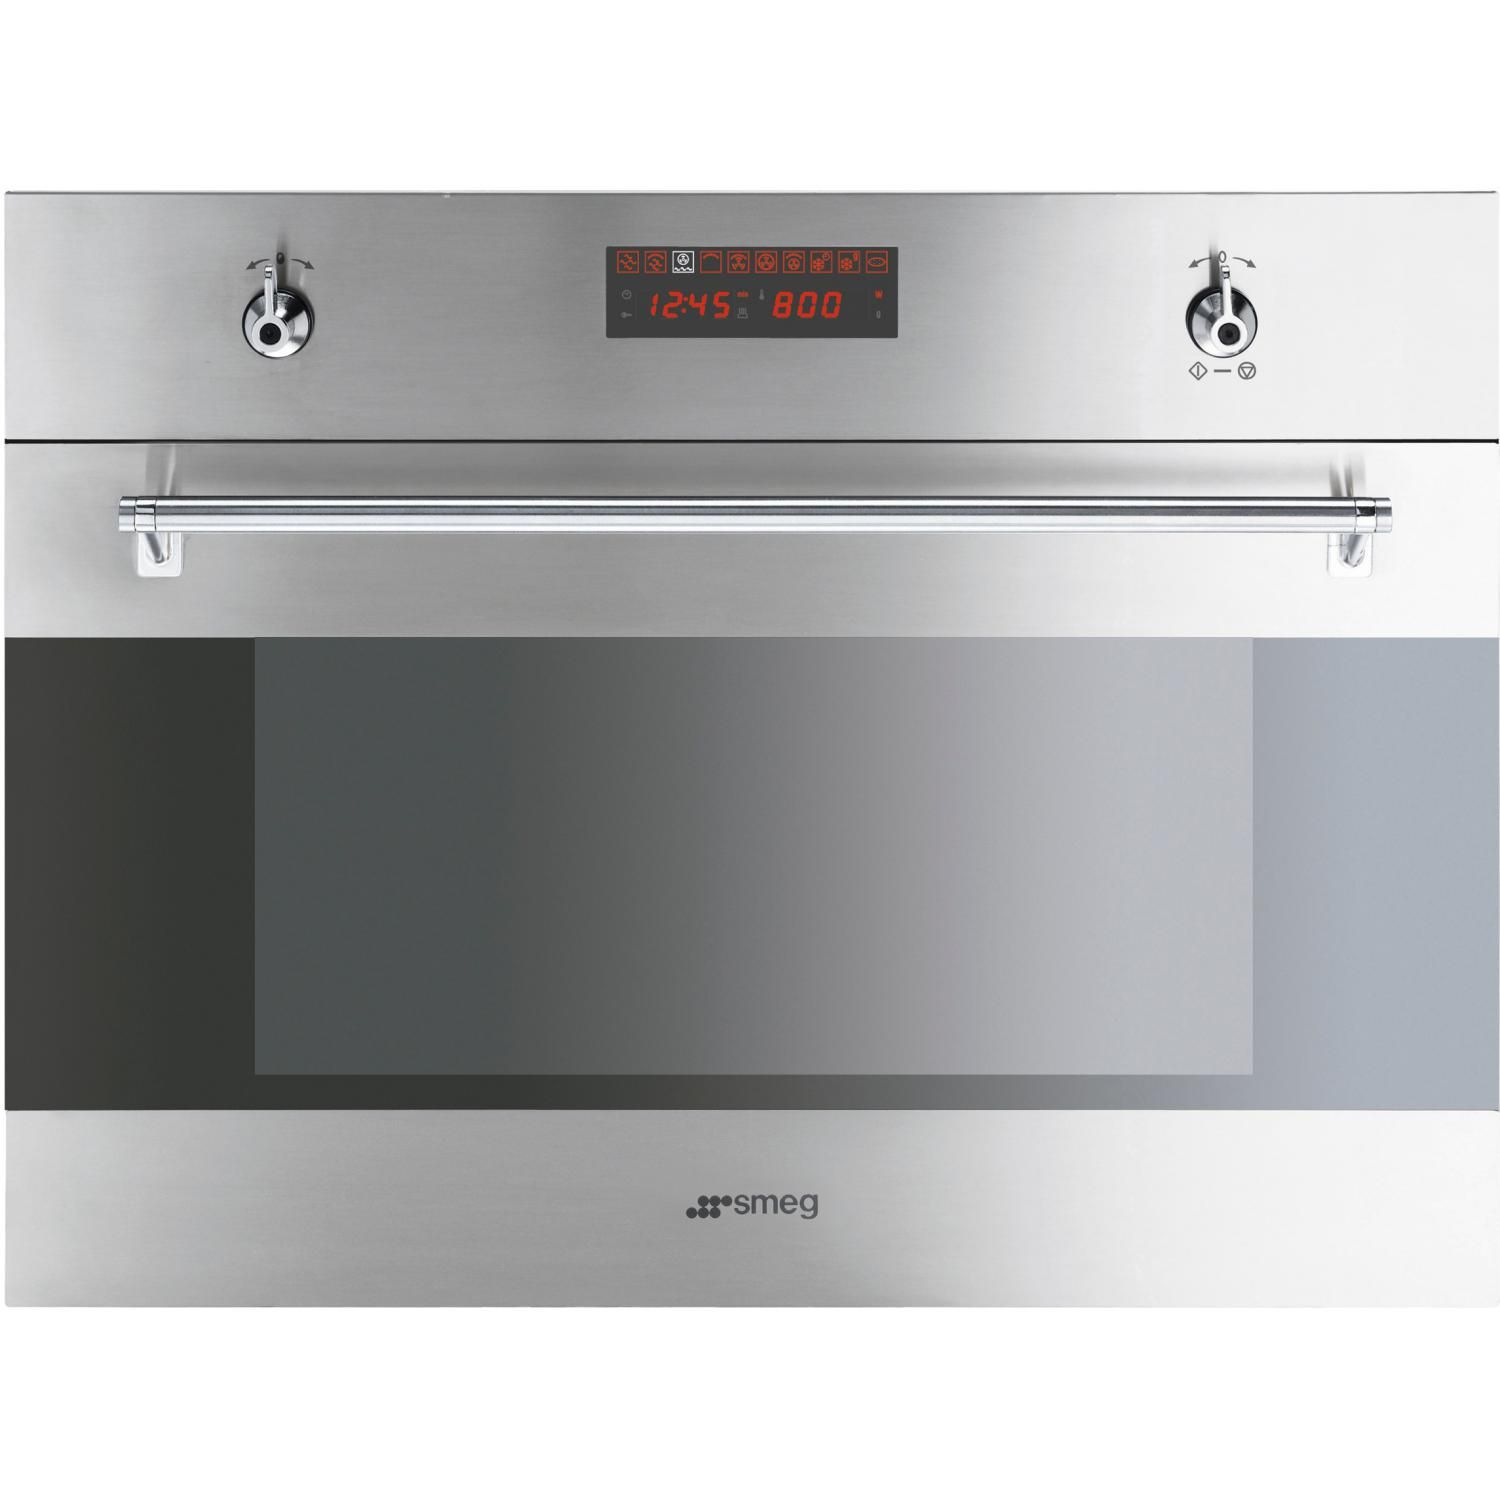 smeg classic 24 inch built in speed